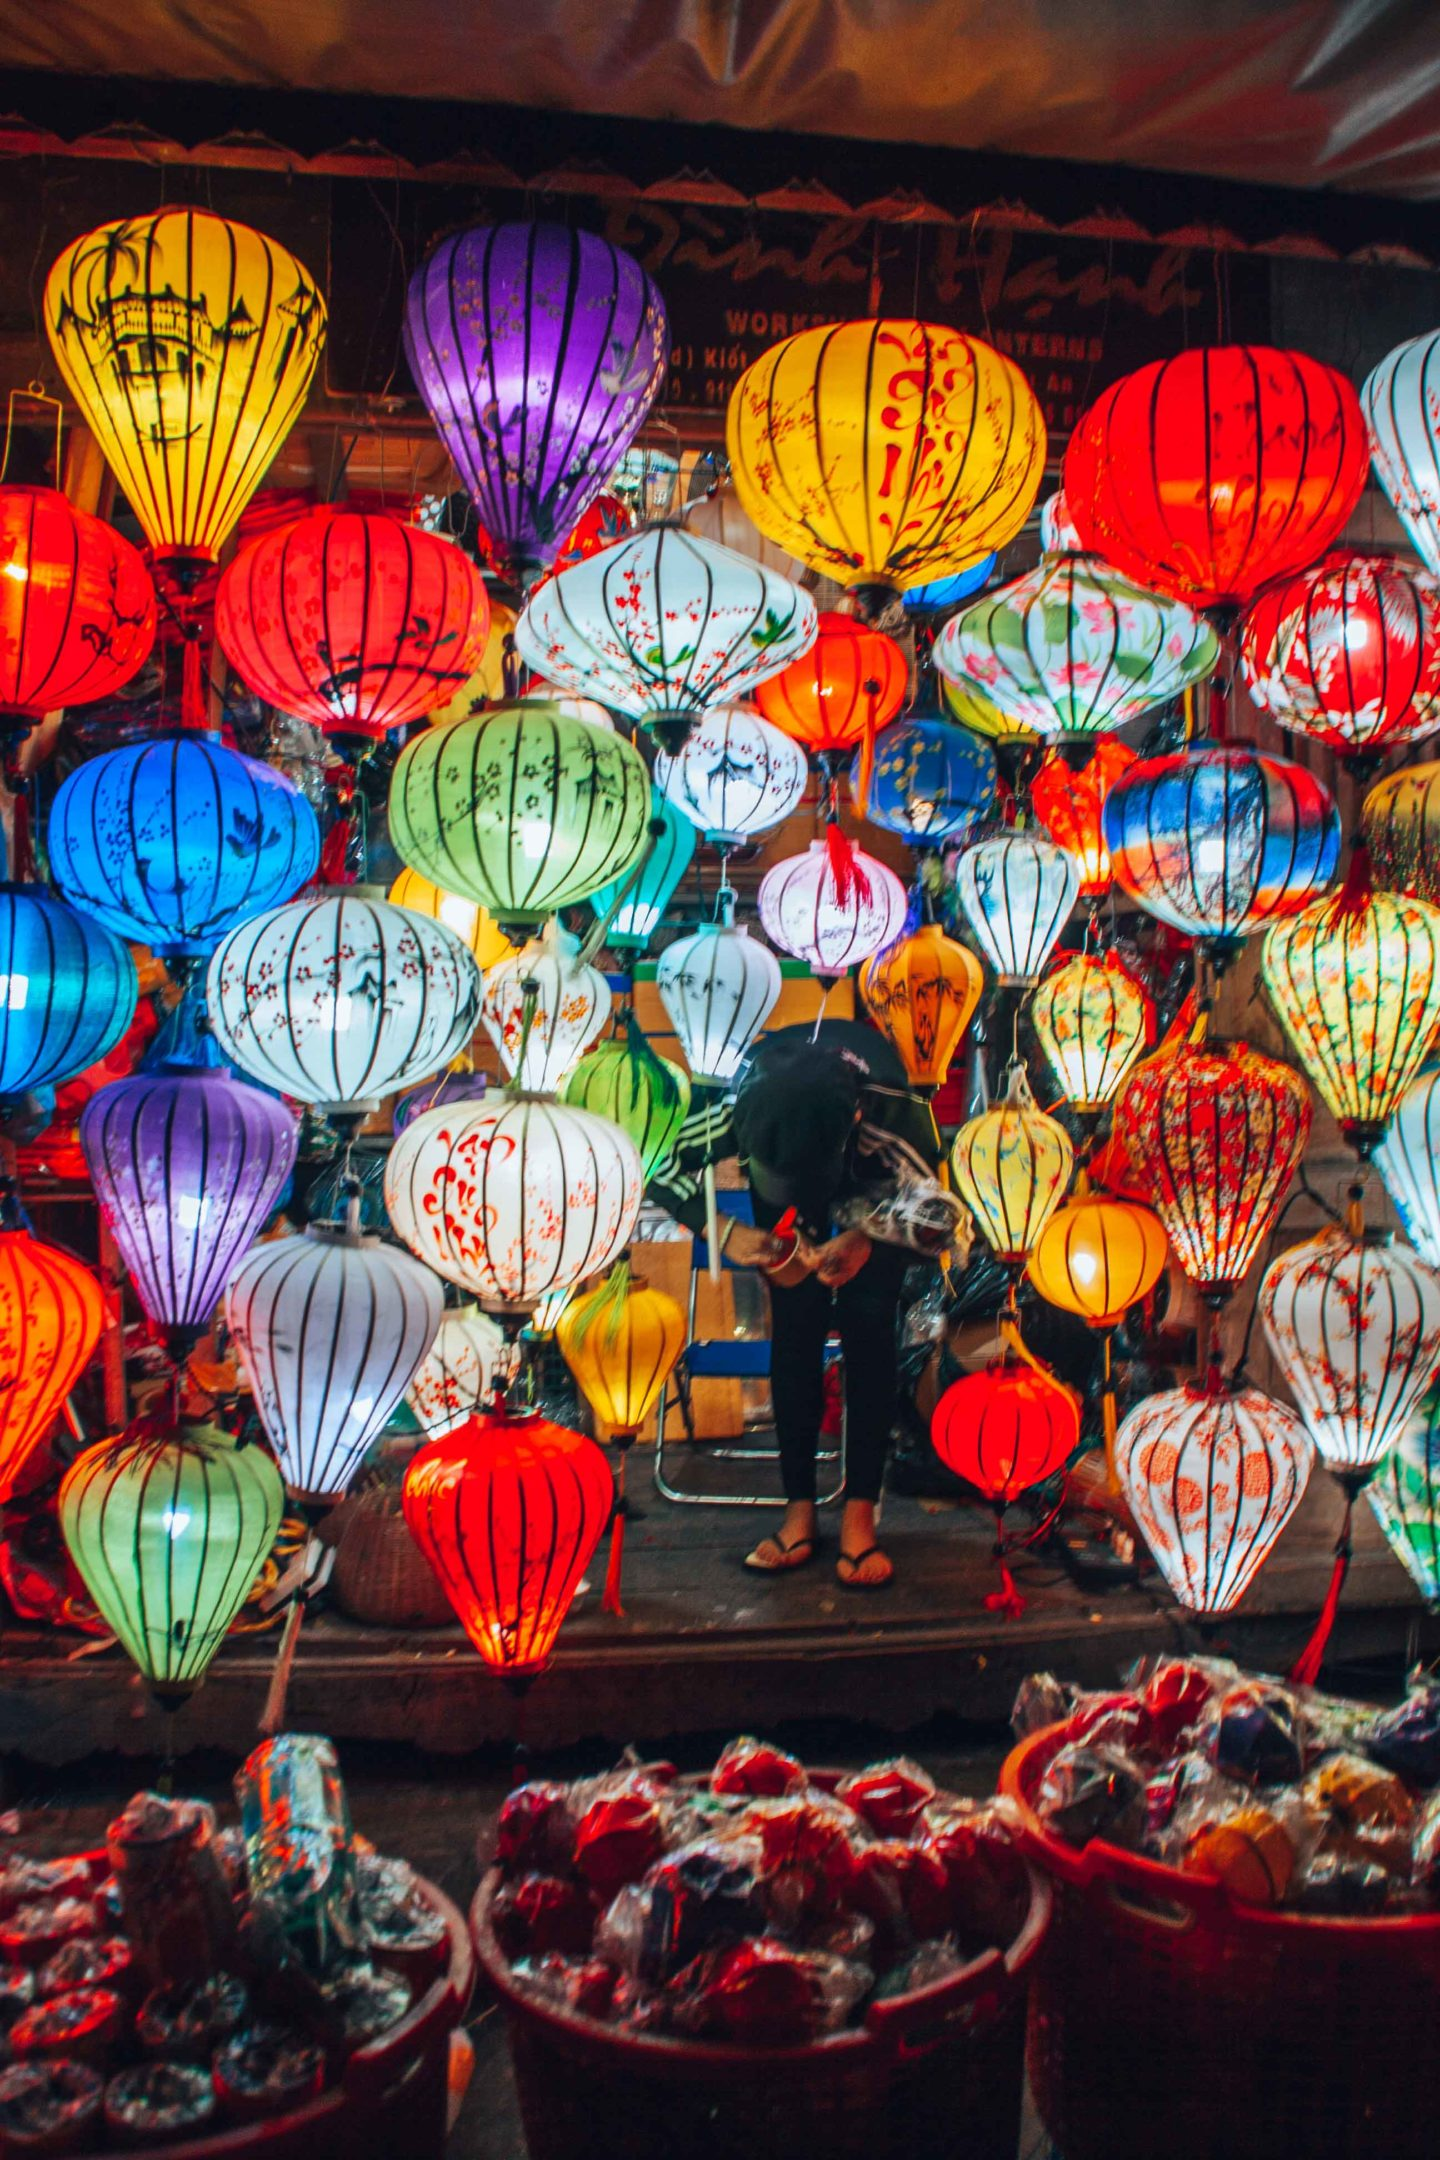 Where to find lanterns stalls in Hoi An, Vietnam